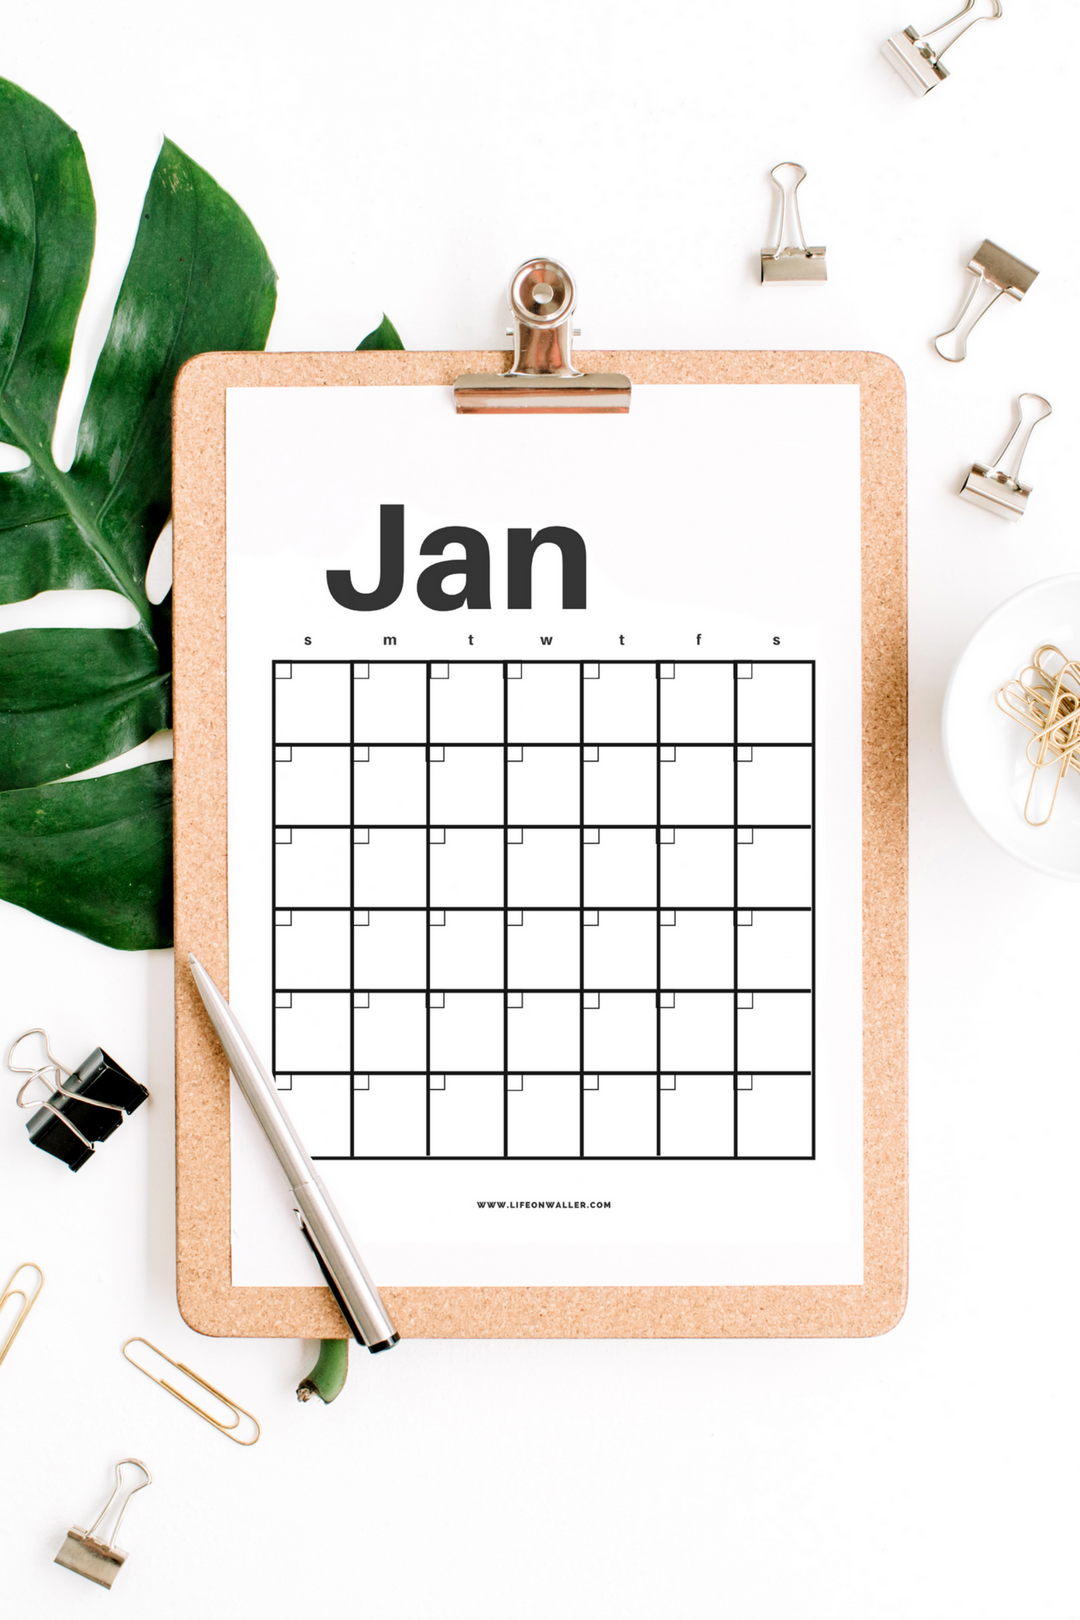 40+ Free Printable 2018 Calendars | Squirrelly Minds - Photo by Life on Waller